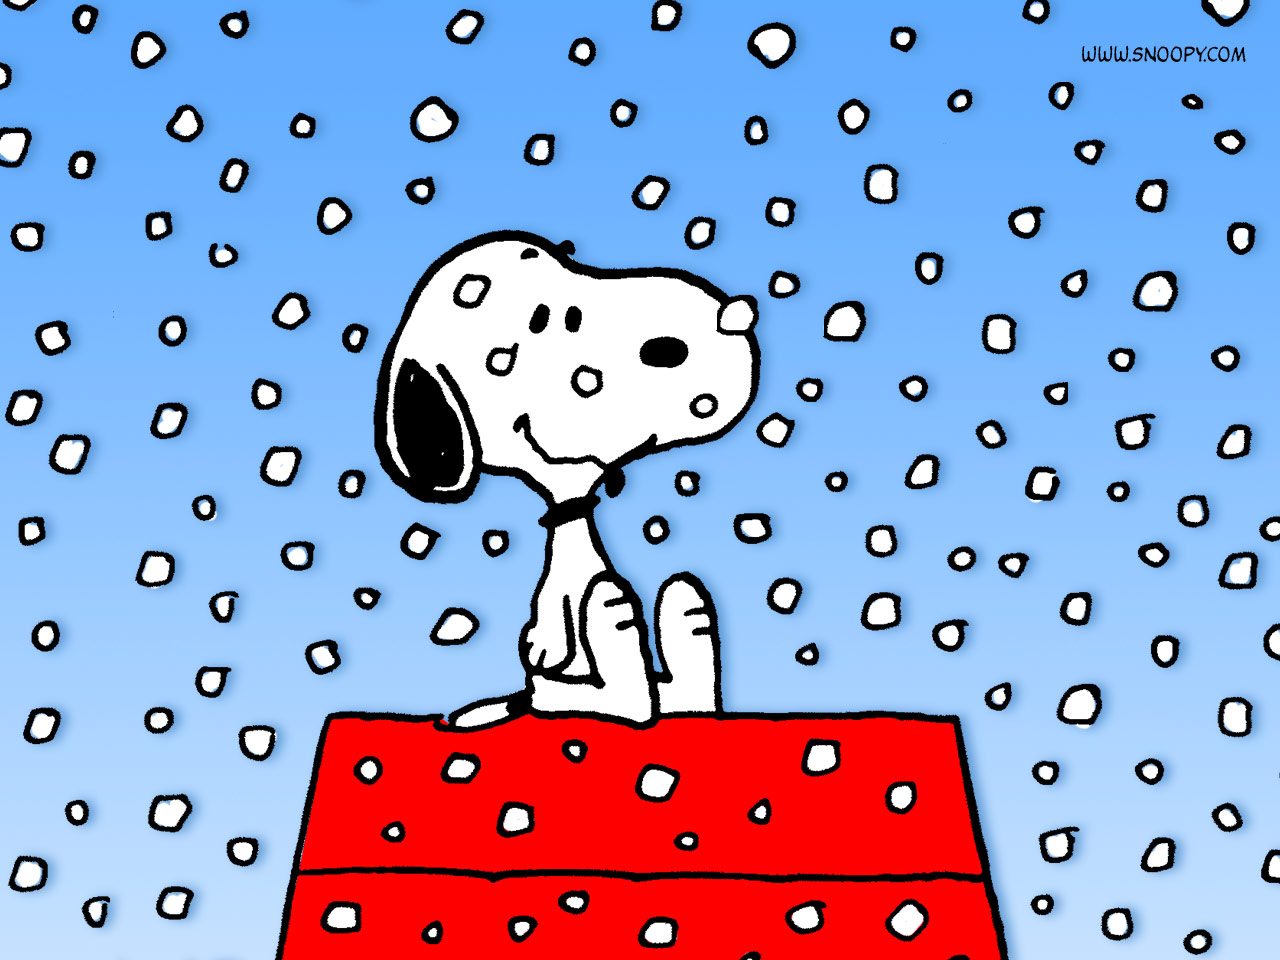 Droopy the dog cartoon droopy the dog pictures droopy the dog quotes - Snoopy Christmas Cartoon Viewing Gallery